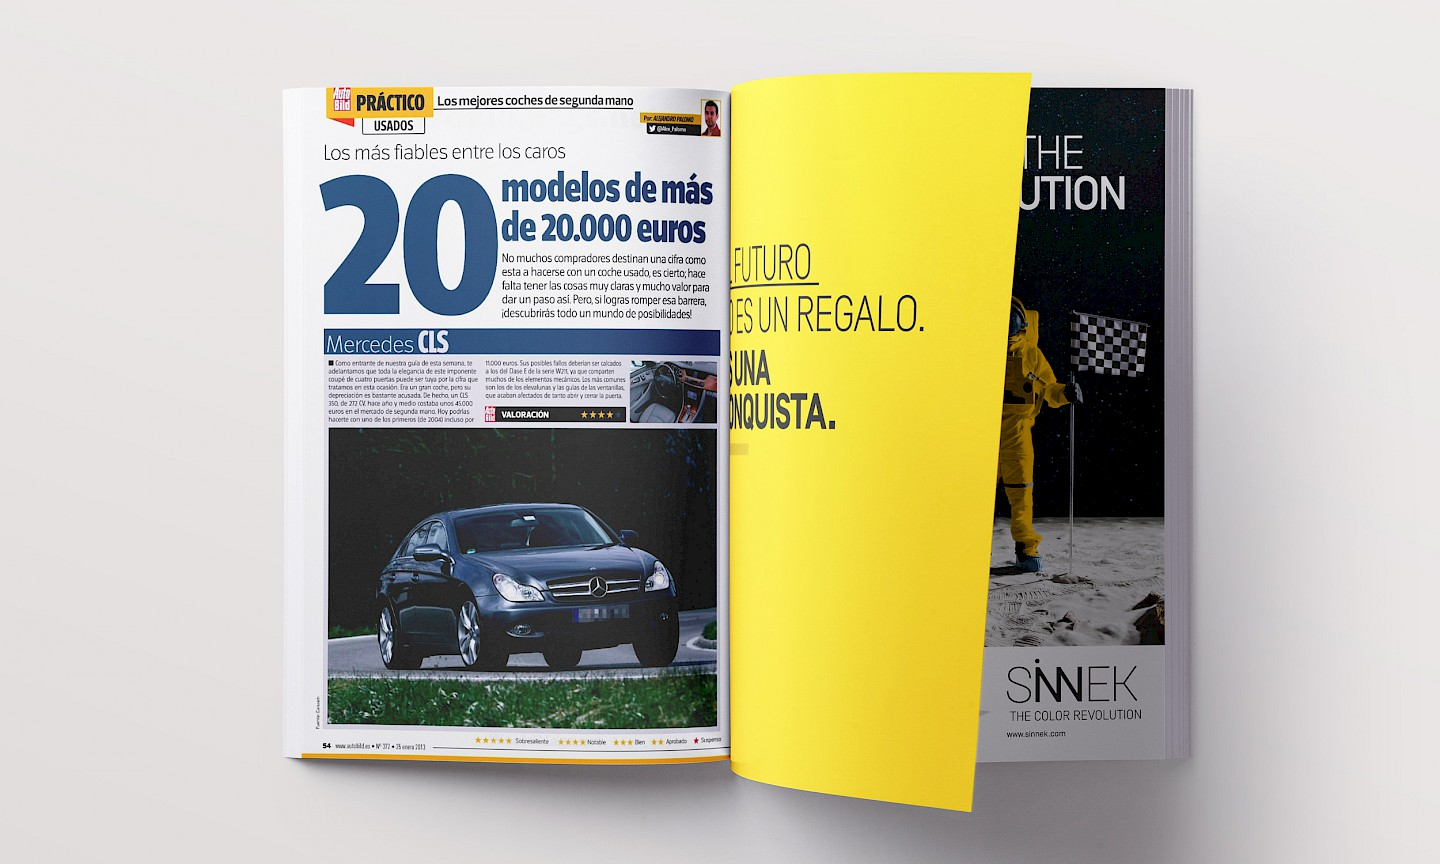 move sinnek branding revista03 anuncio